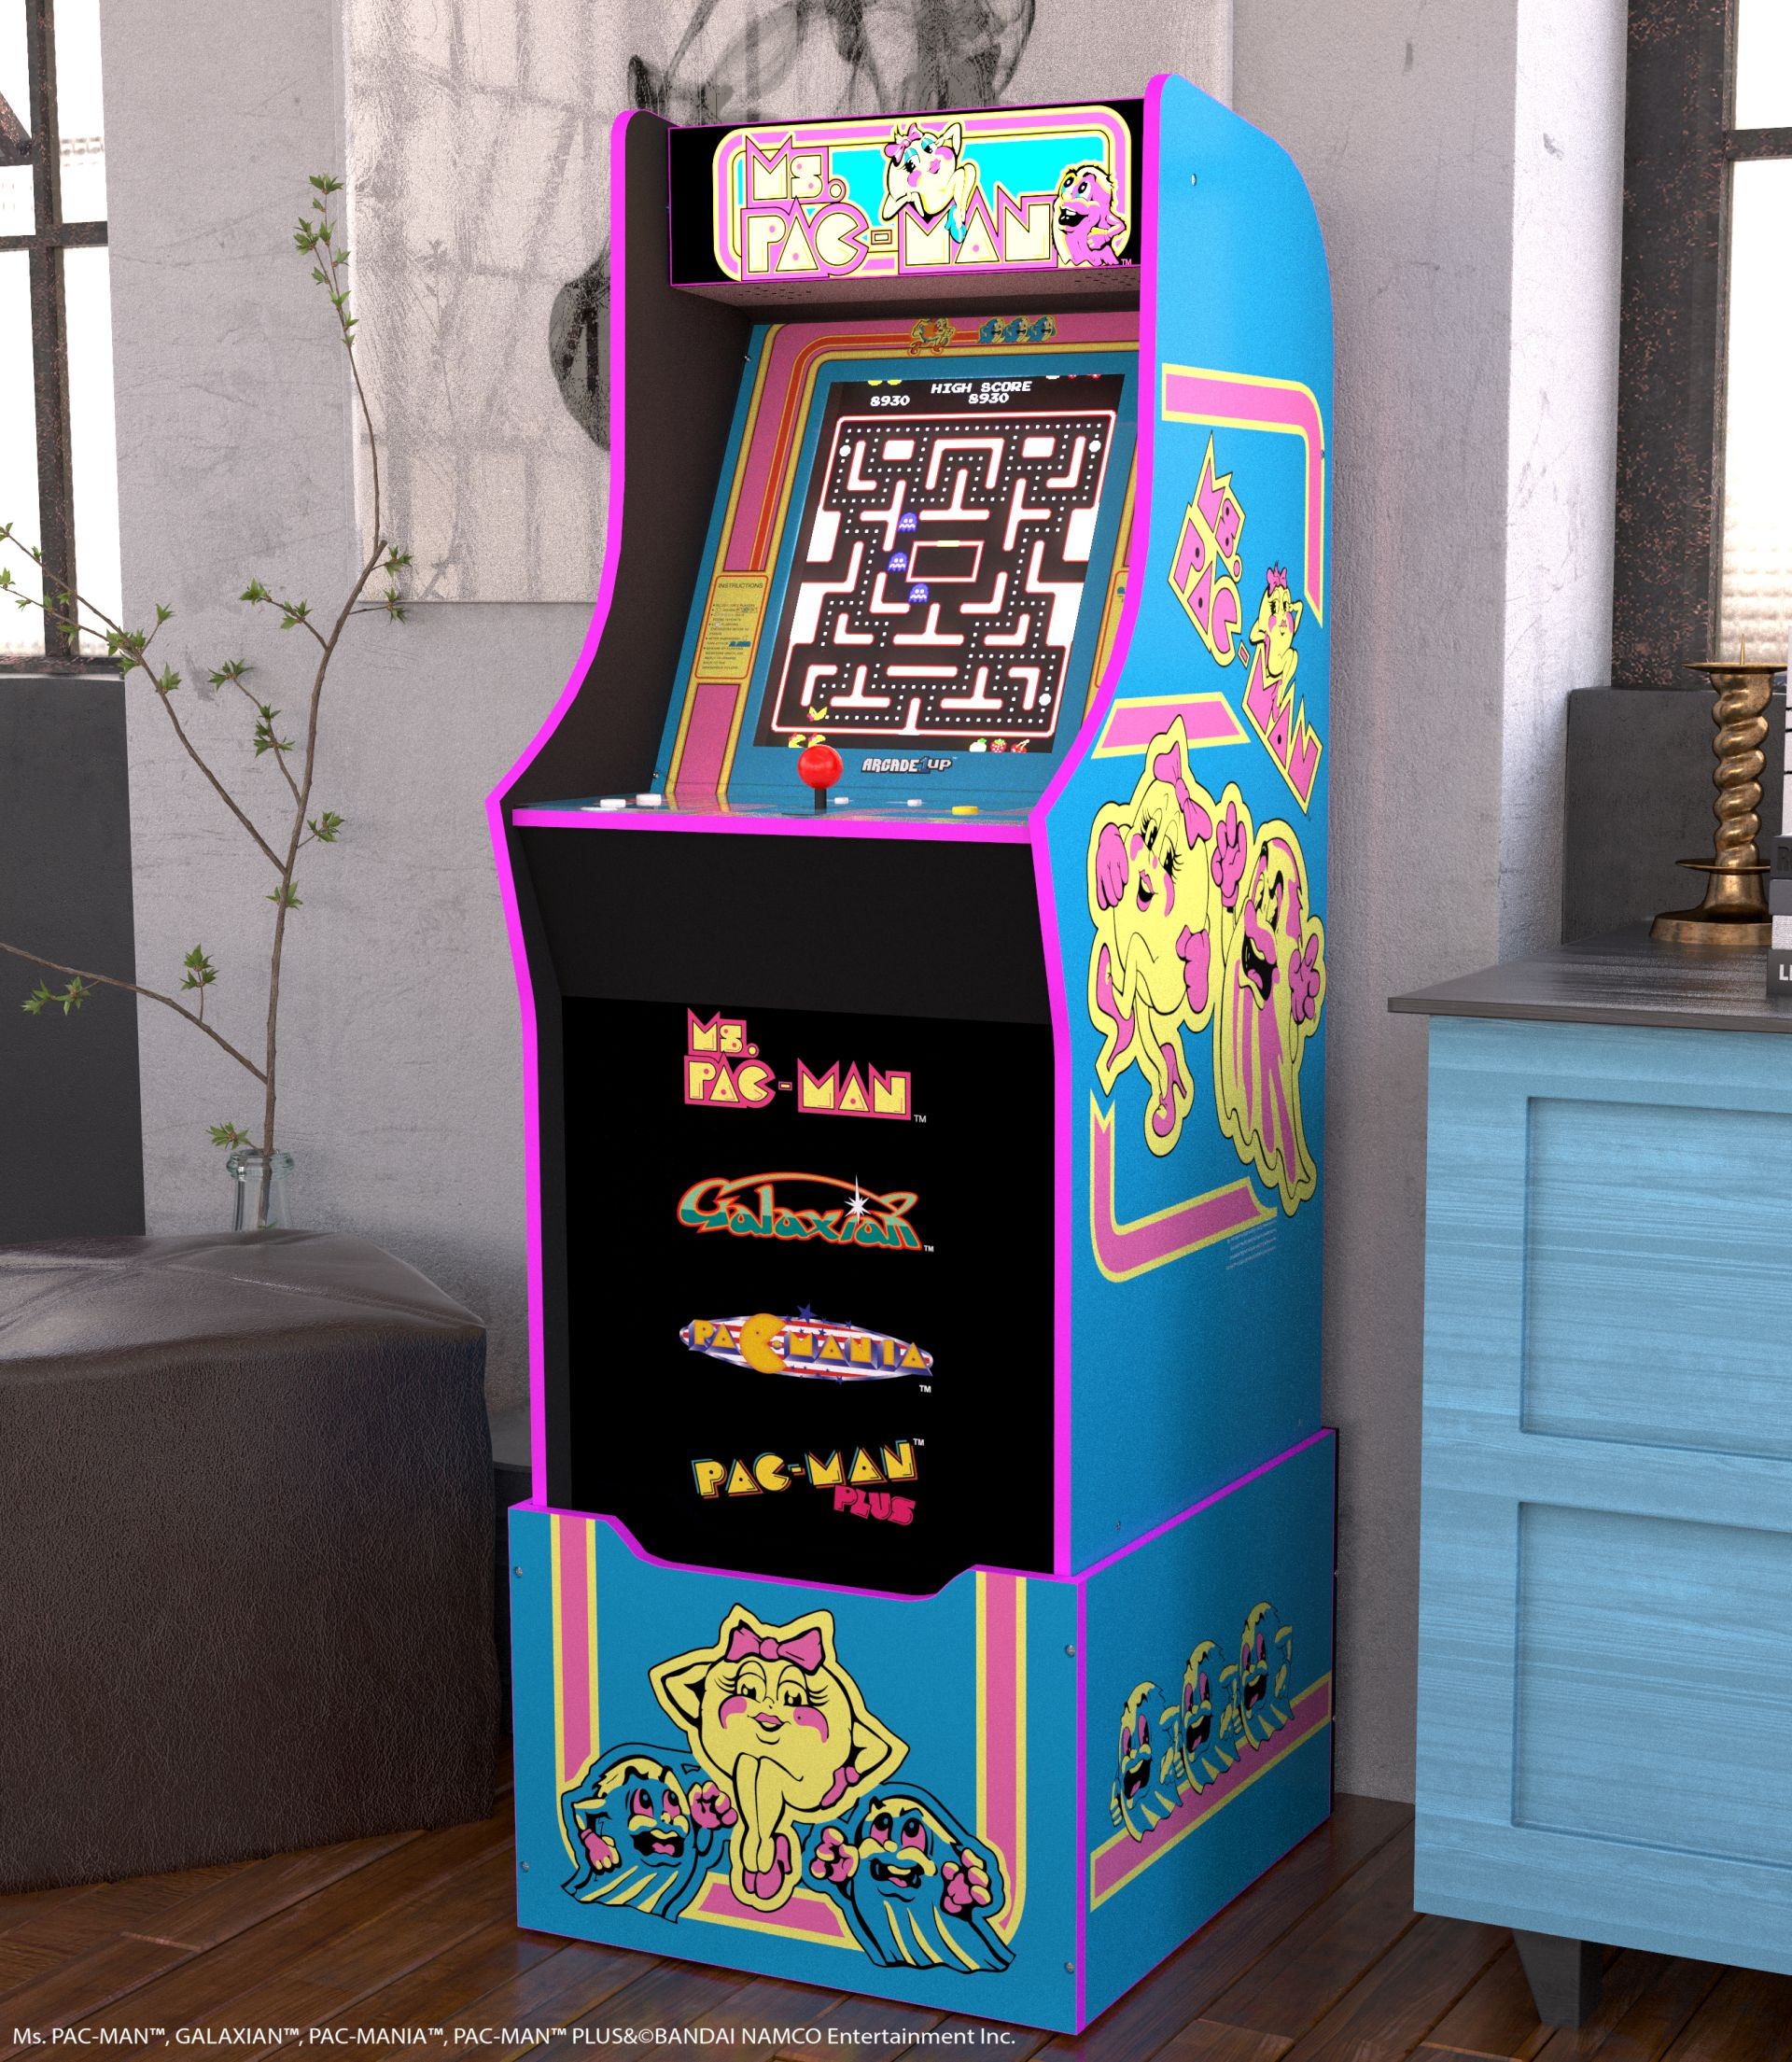 Ms. Pac-Man makes her debut as part of Arcade1Up's roster.